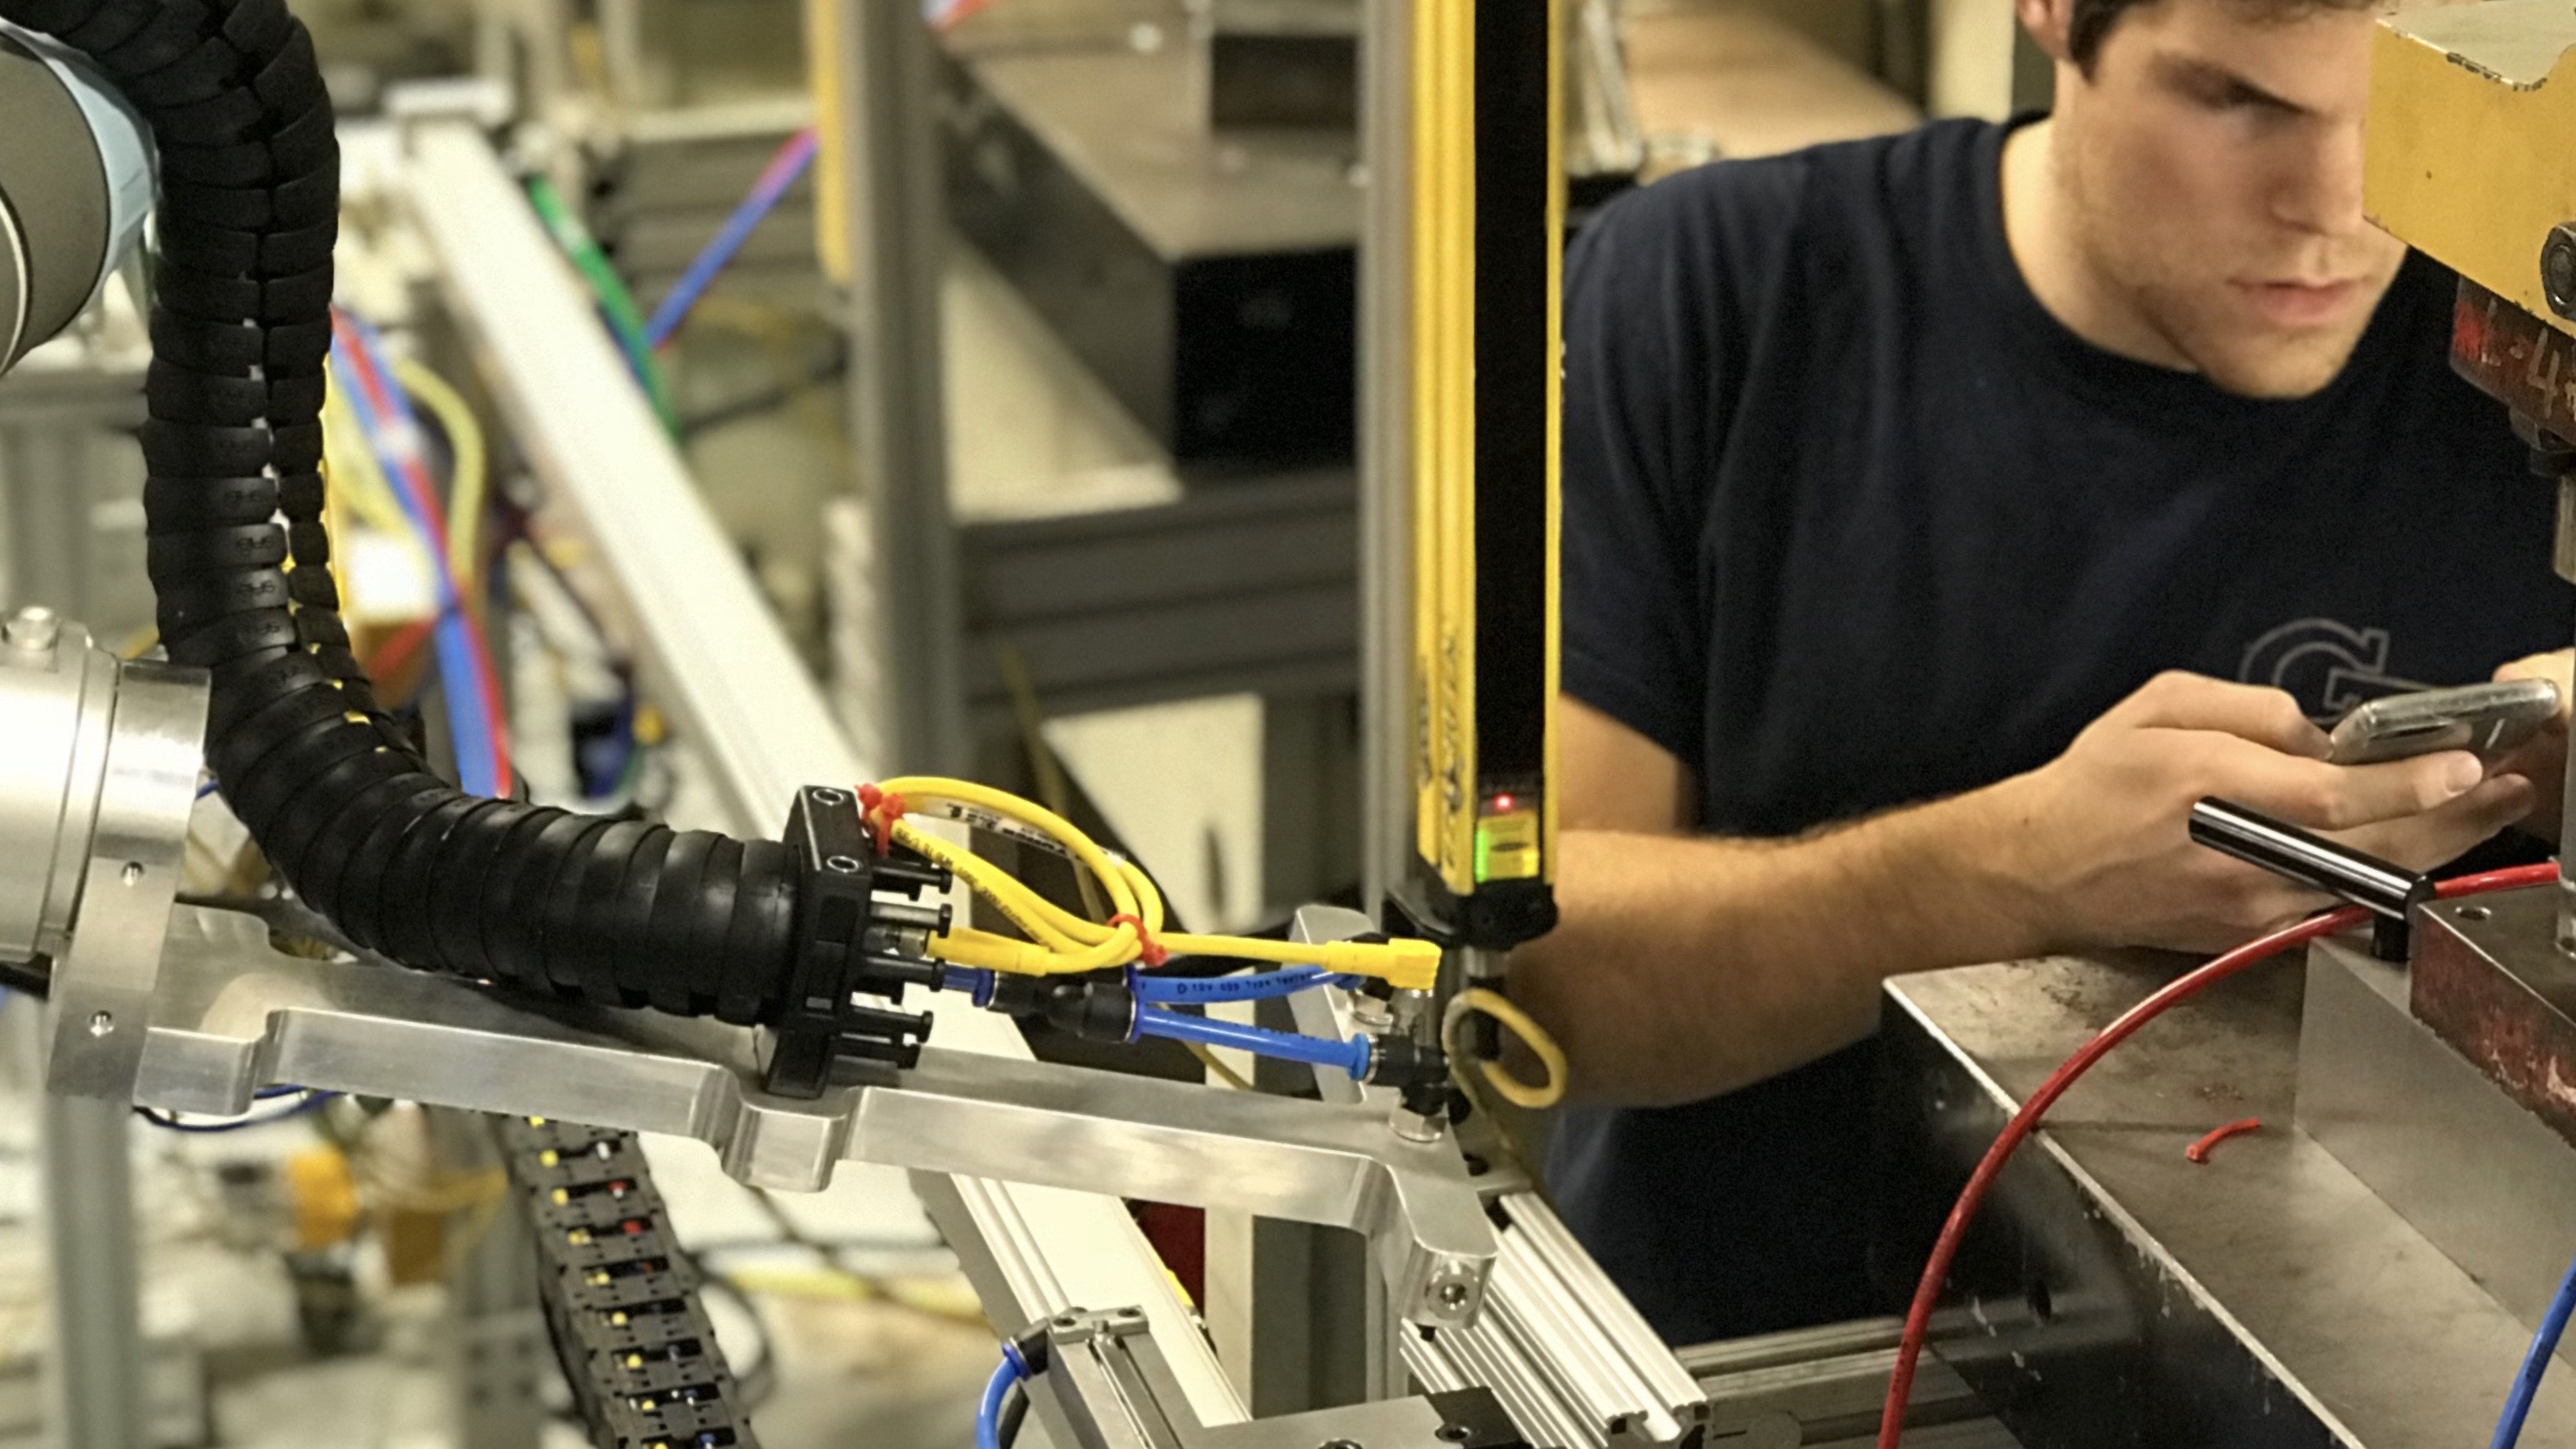 Hirebotics adjusting robot performance from mobile app